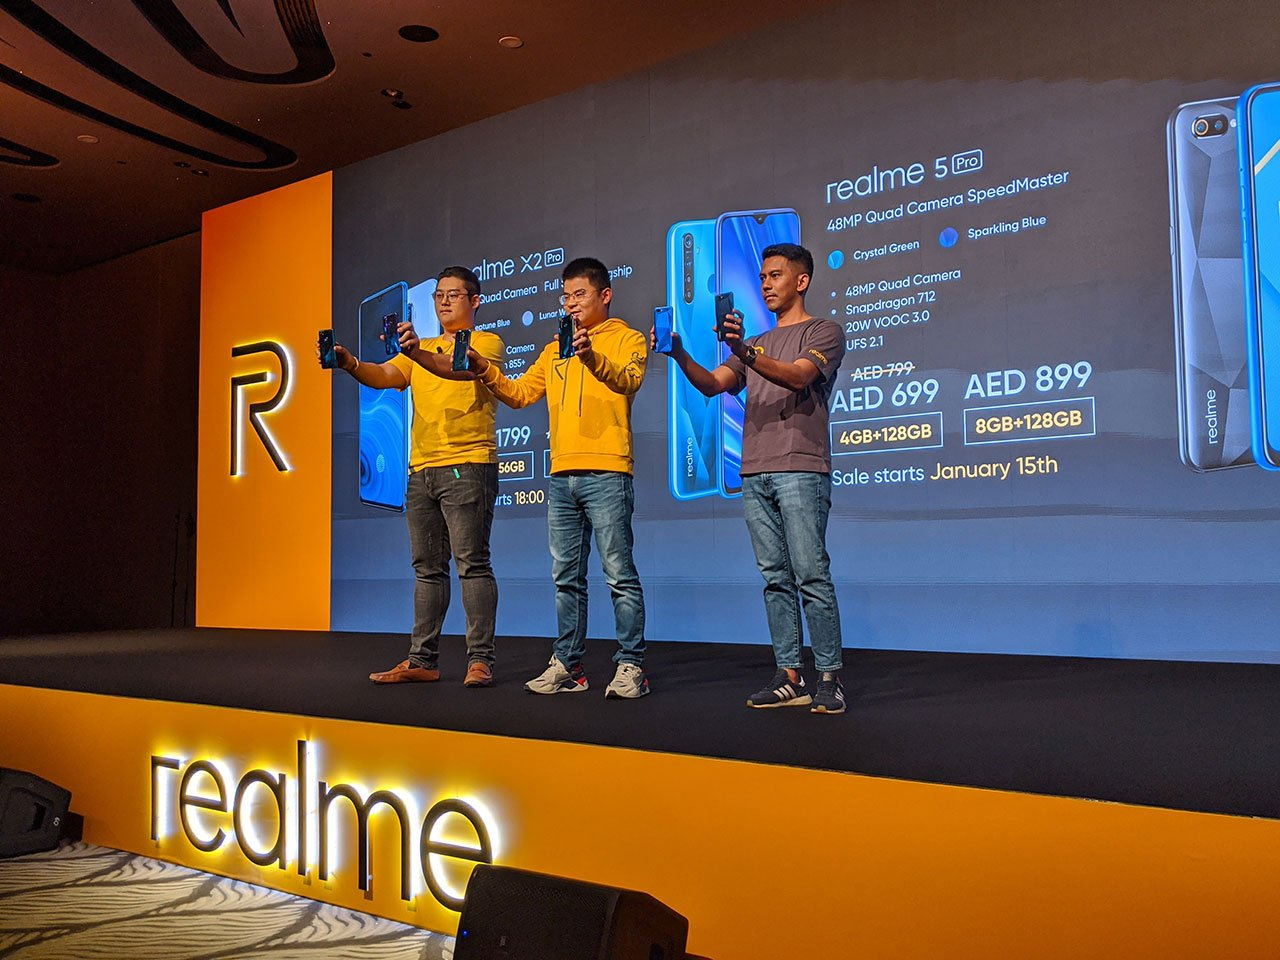 realme Officially Launched in the UAE